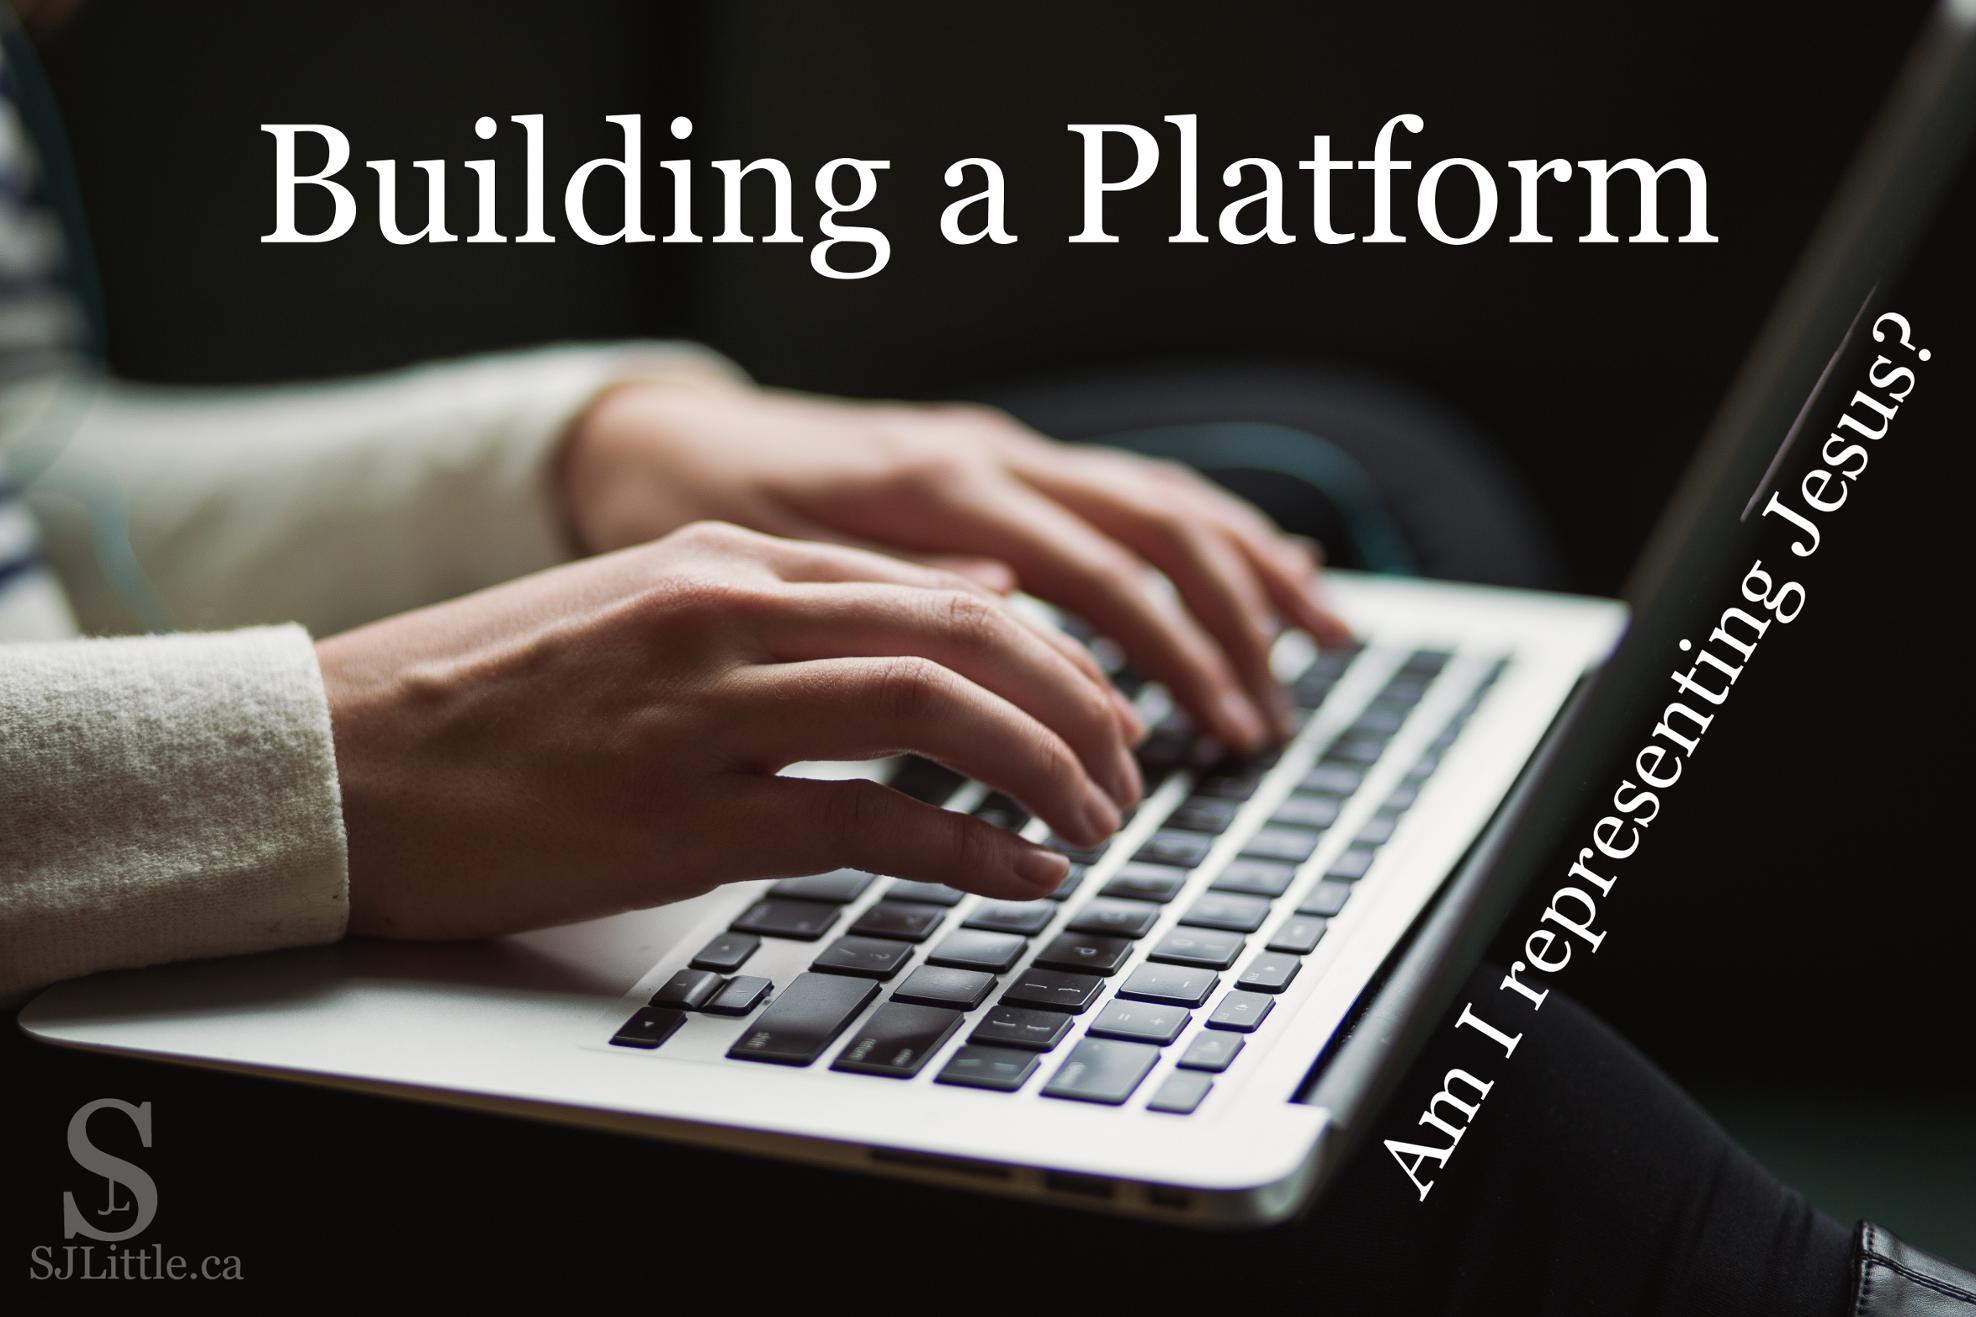 While I'm building my platform, God is building His own. Am I representing Jesus well? Read article at SJLittle.ca